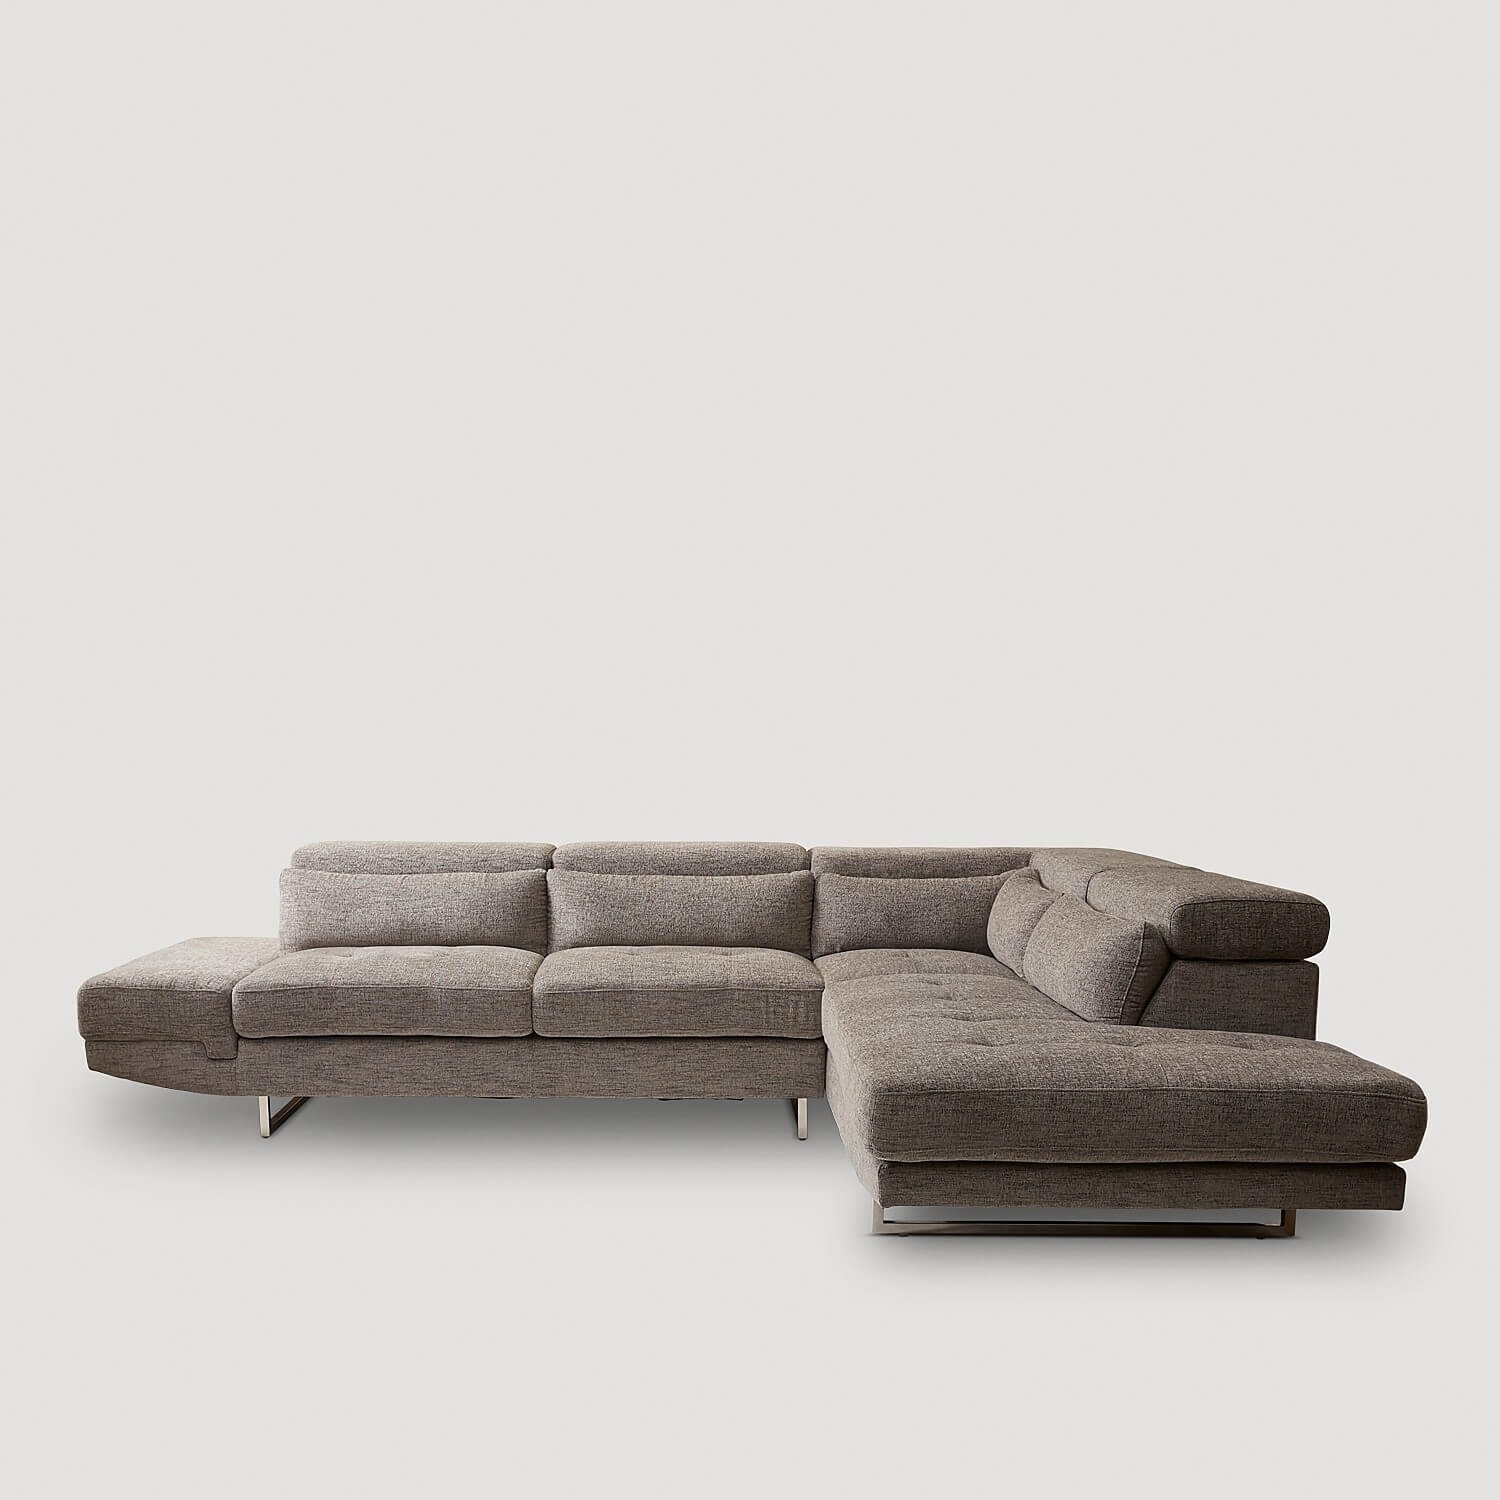 Cadence Modular Left Chaise Lounge DC